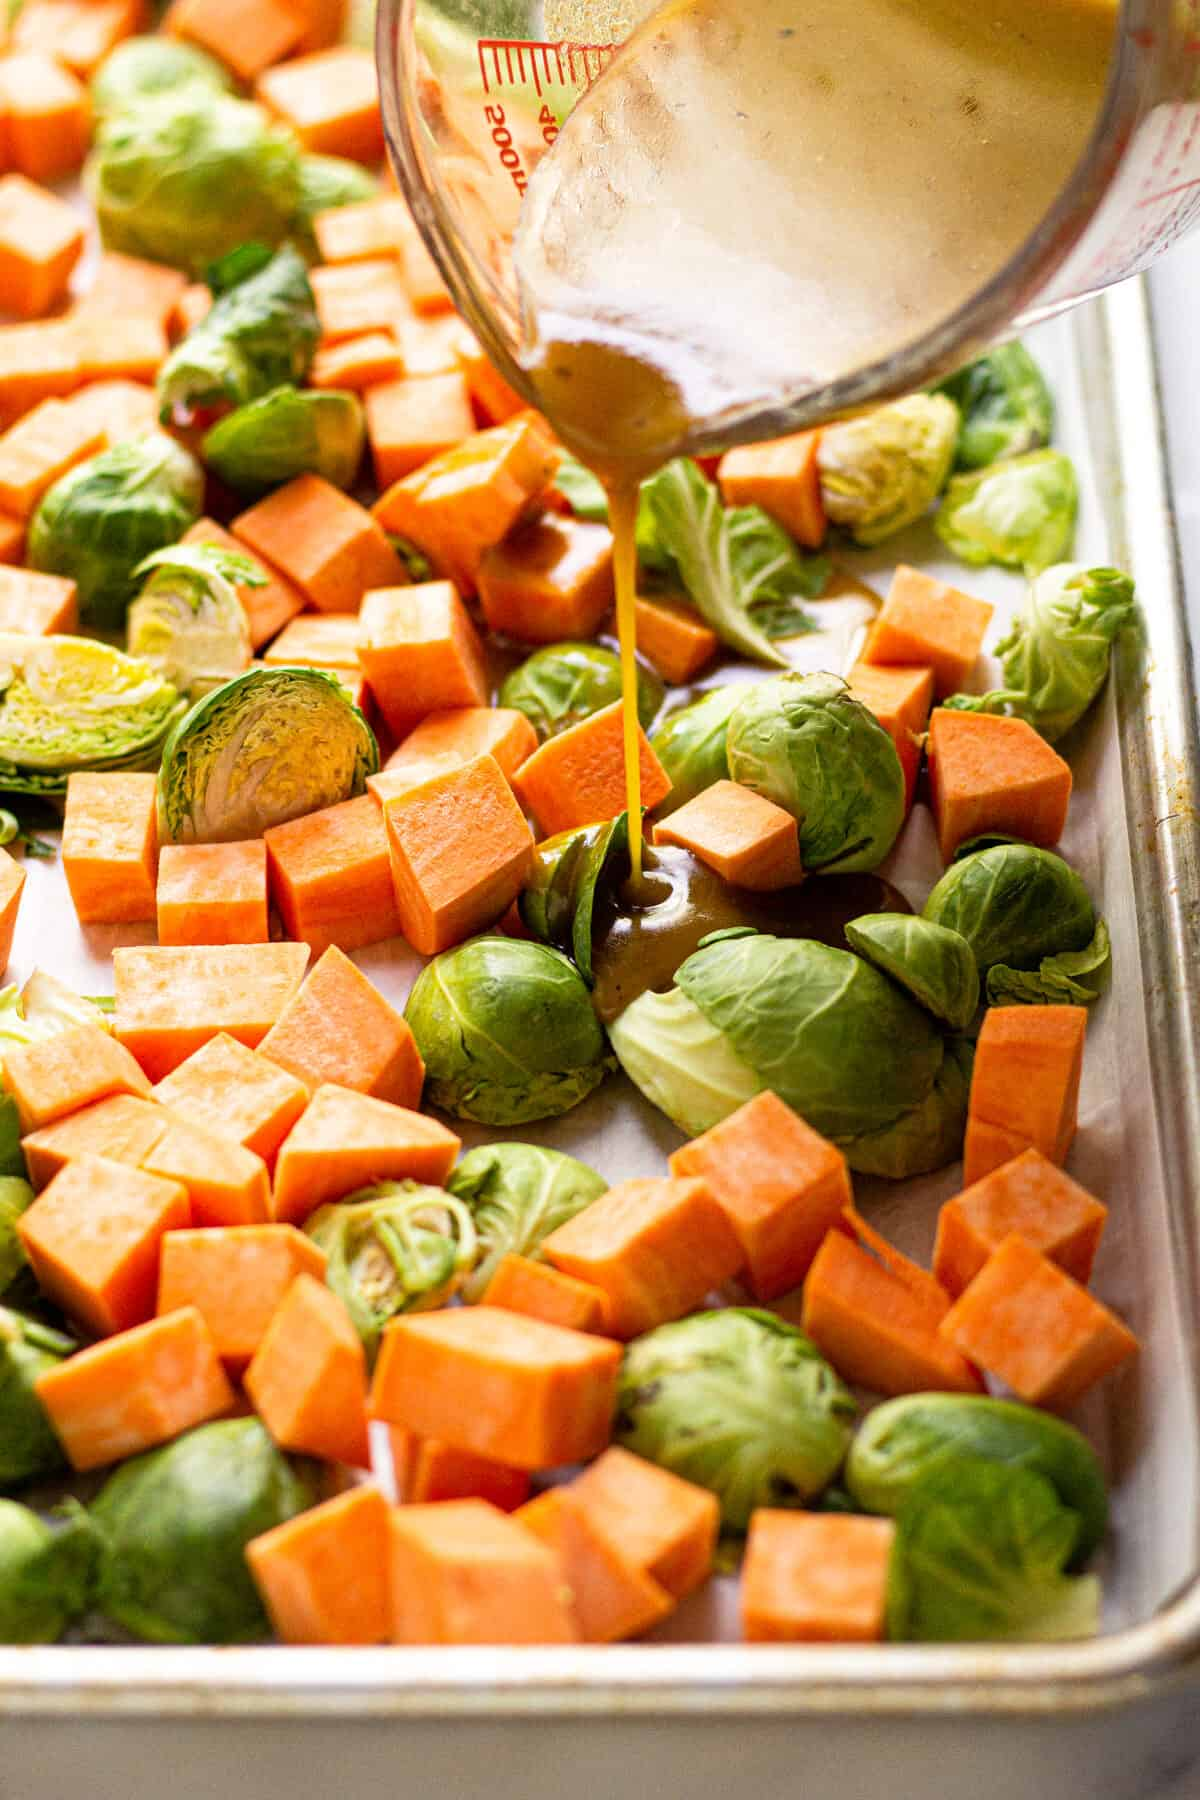 Maple mustard dressing being poured over a pan of Brussels sprouts and cubed sweet potatoes